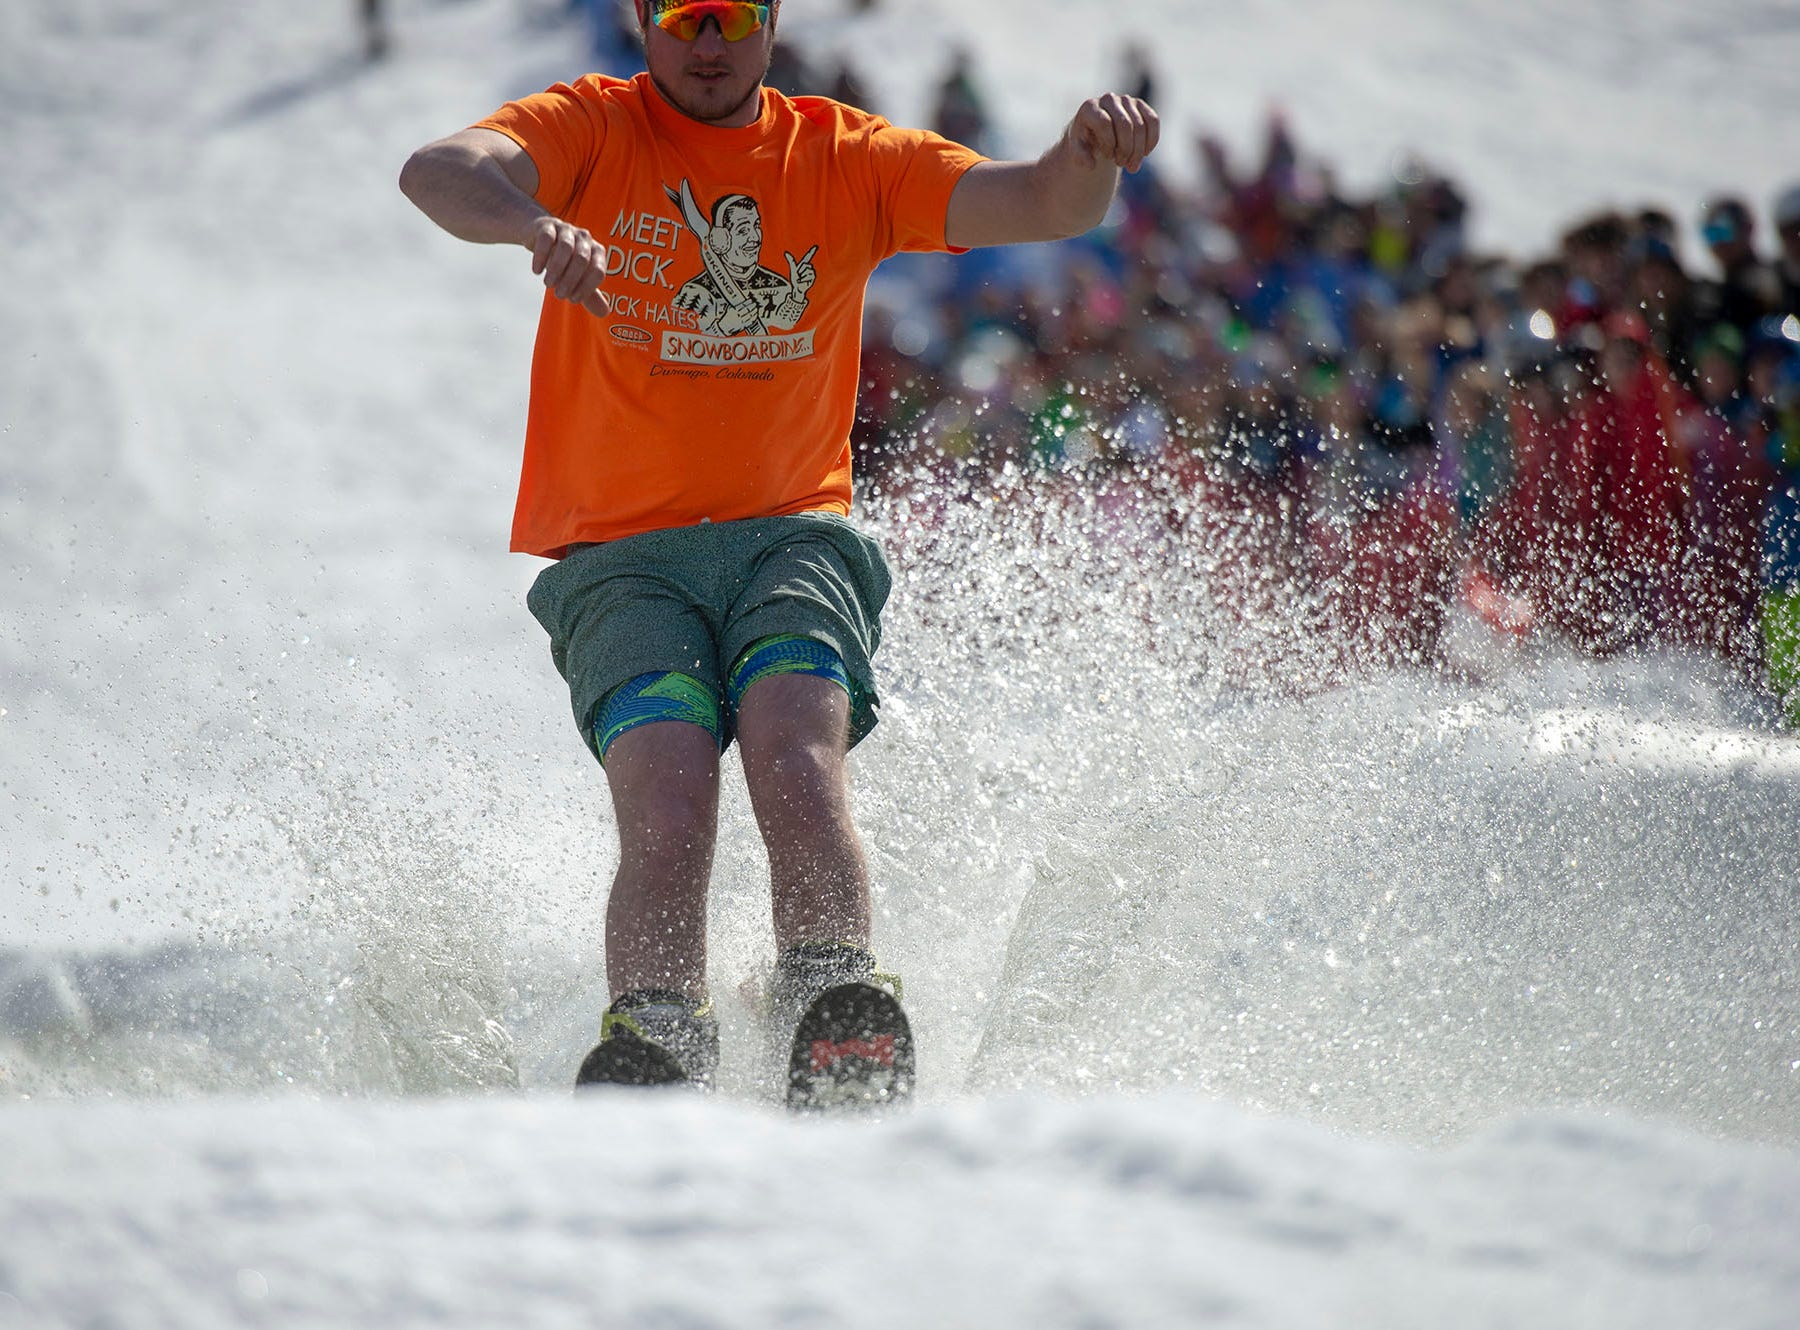 This participant makes pond skimming look easy ... and warm ... at Roundtop Mountain Resort on Saturday, March 16, 2019.